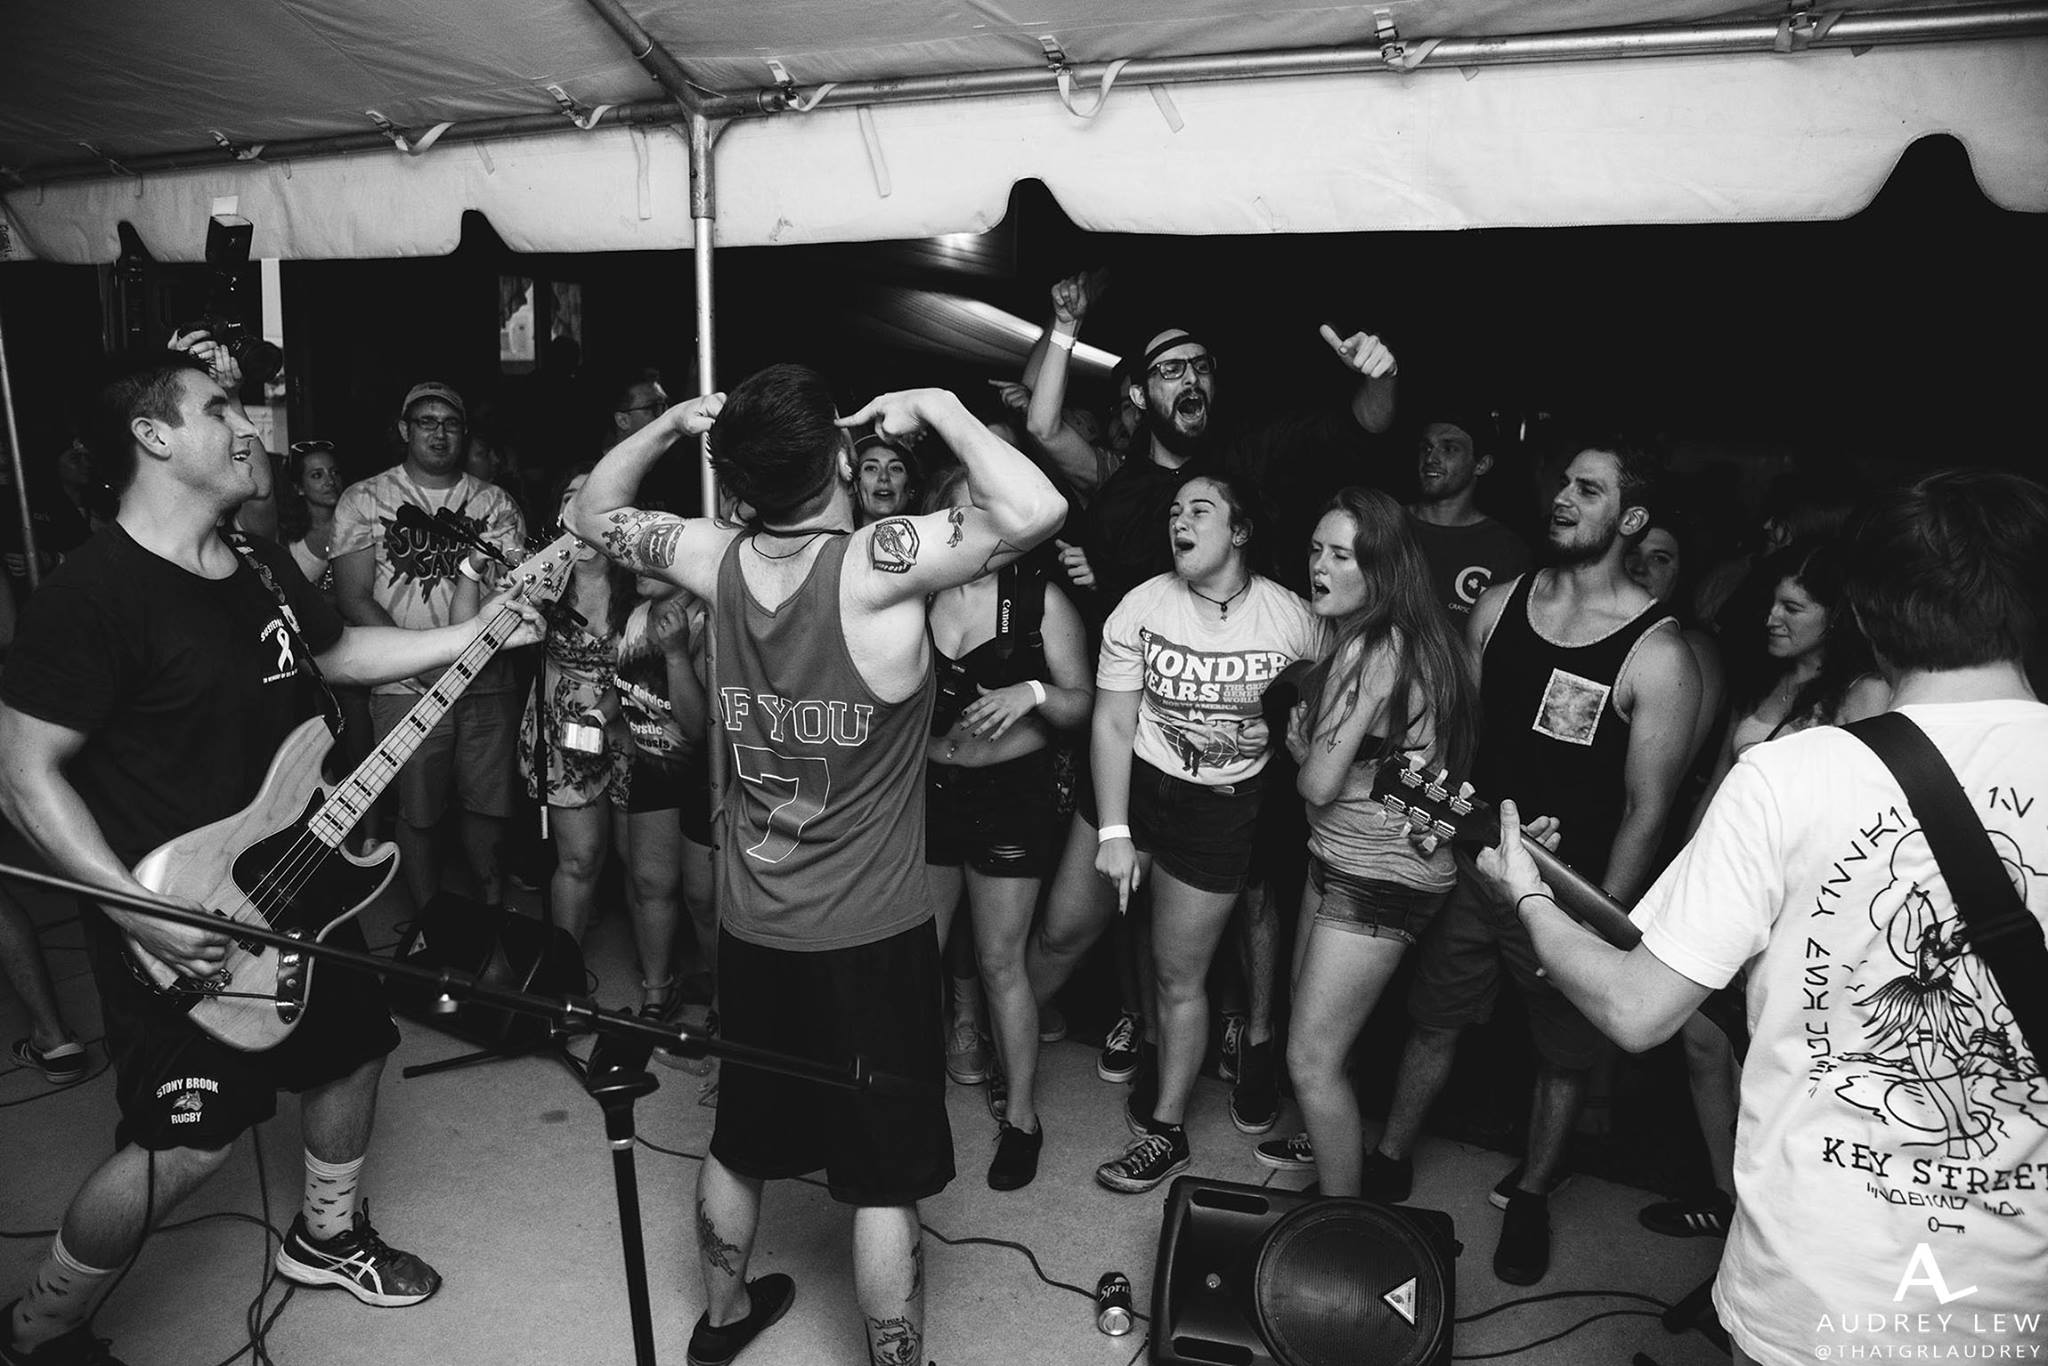 Susiepalooza partners with Hopeless Records for third annual compilation benefiting pancreatic cancer research